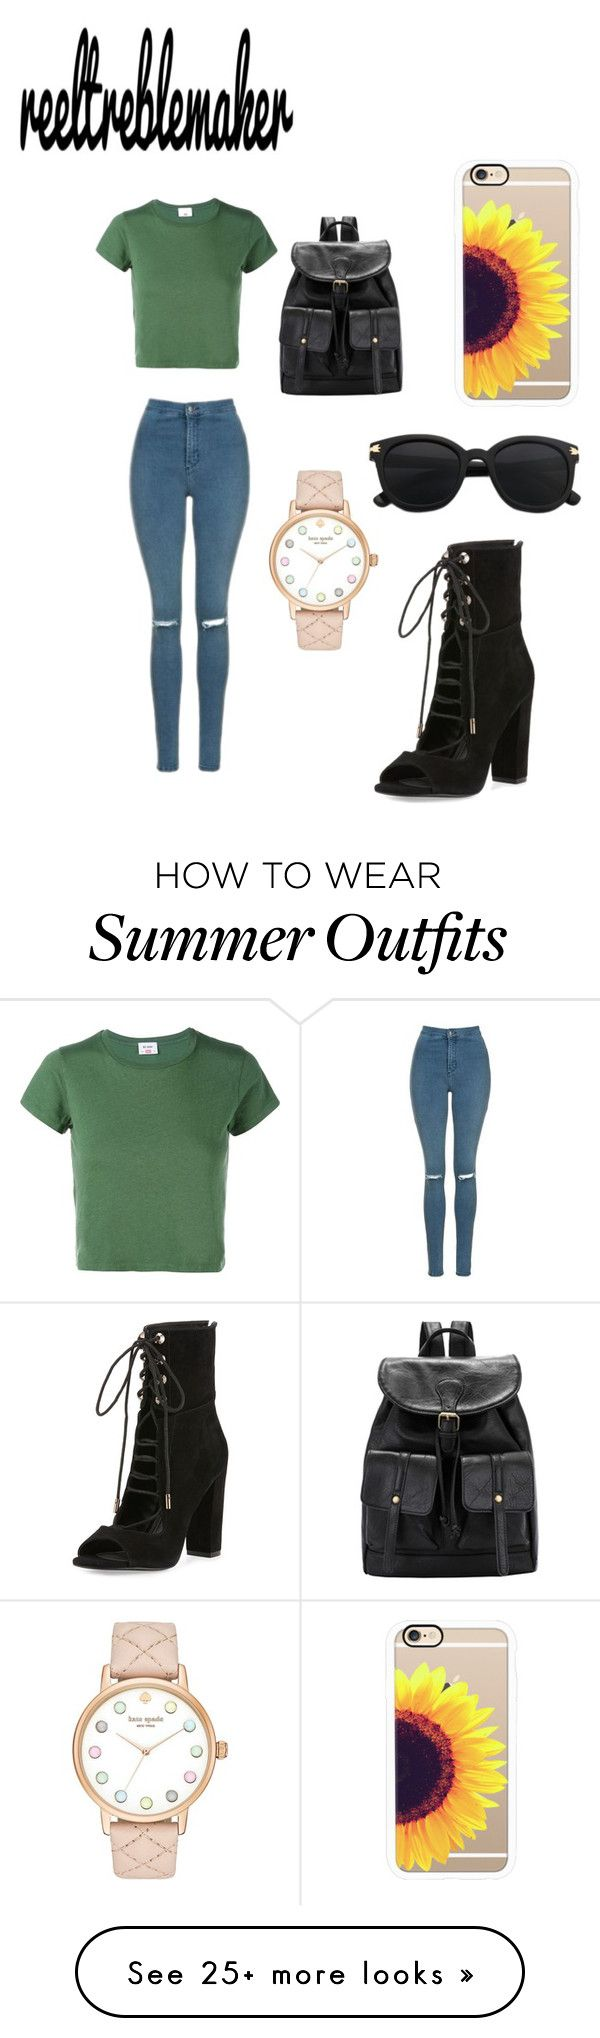 """Every day outfit"" by reeltreblemaker on Polyvore featuring RE/DONE, Topshop, Kate Spade, Kendall + Kylie and Casetify"